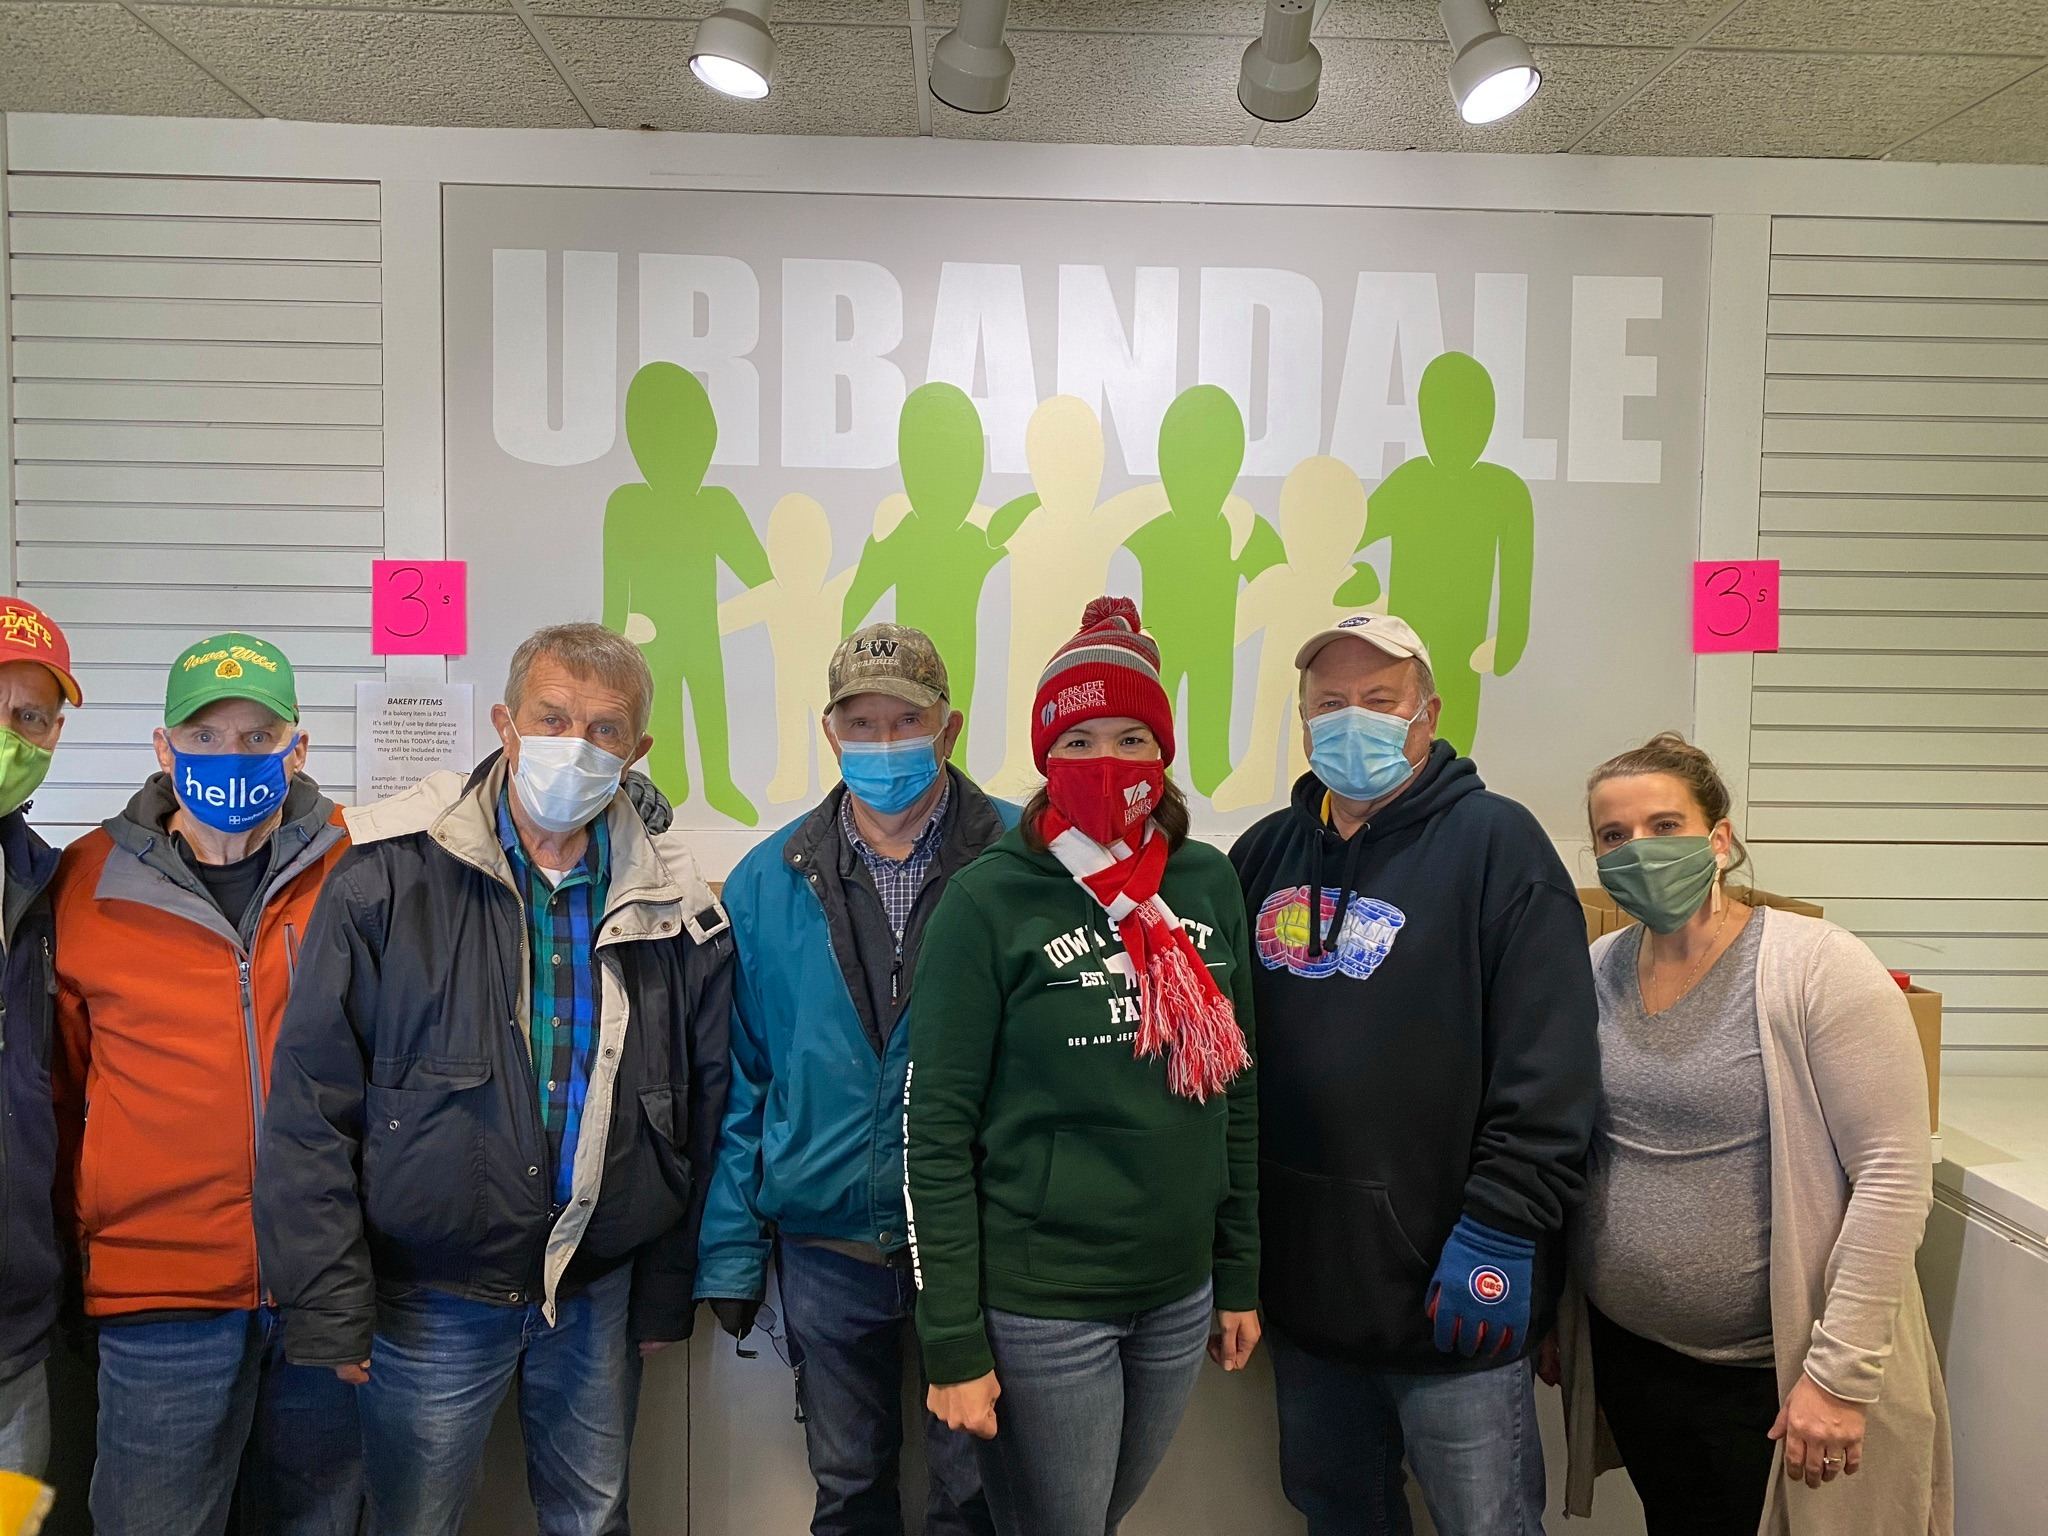 Ubandale Food Pantry Helpers